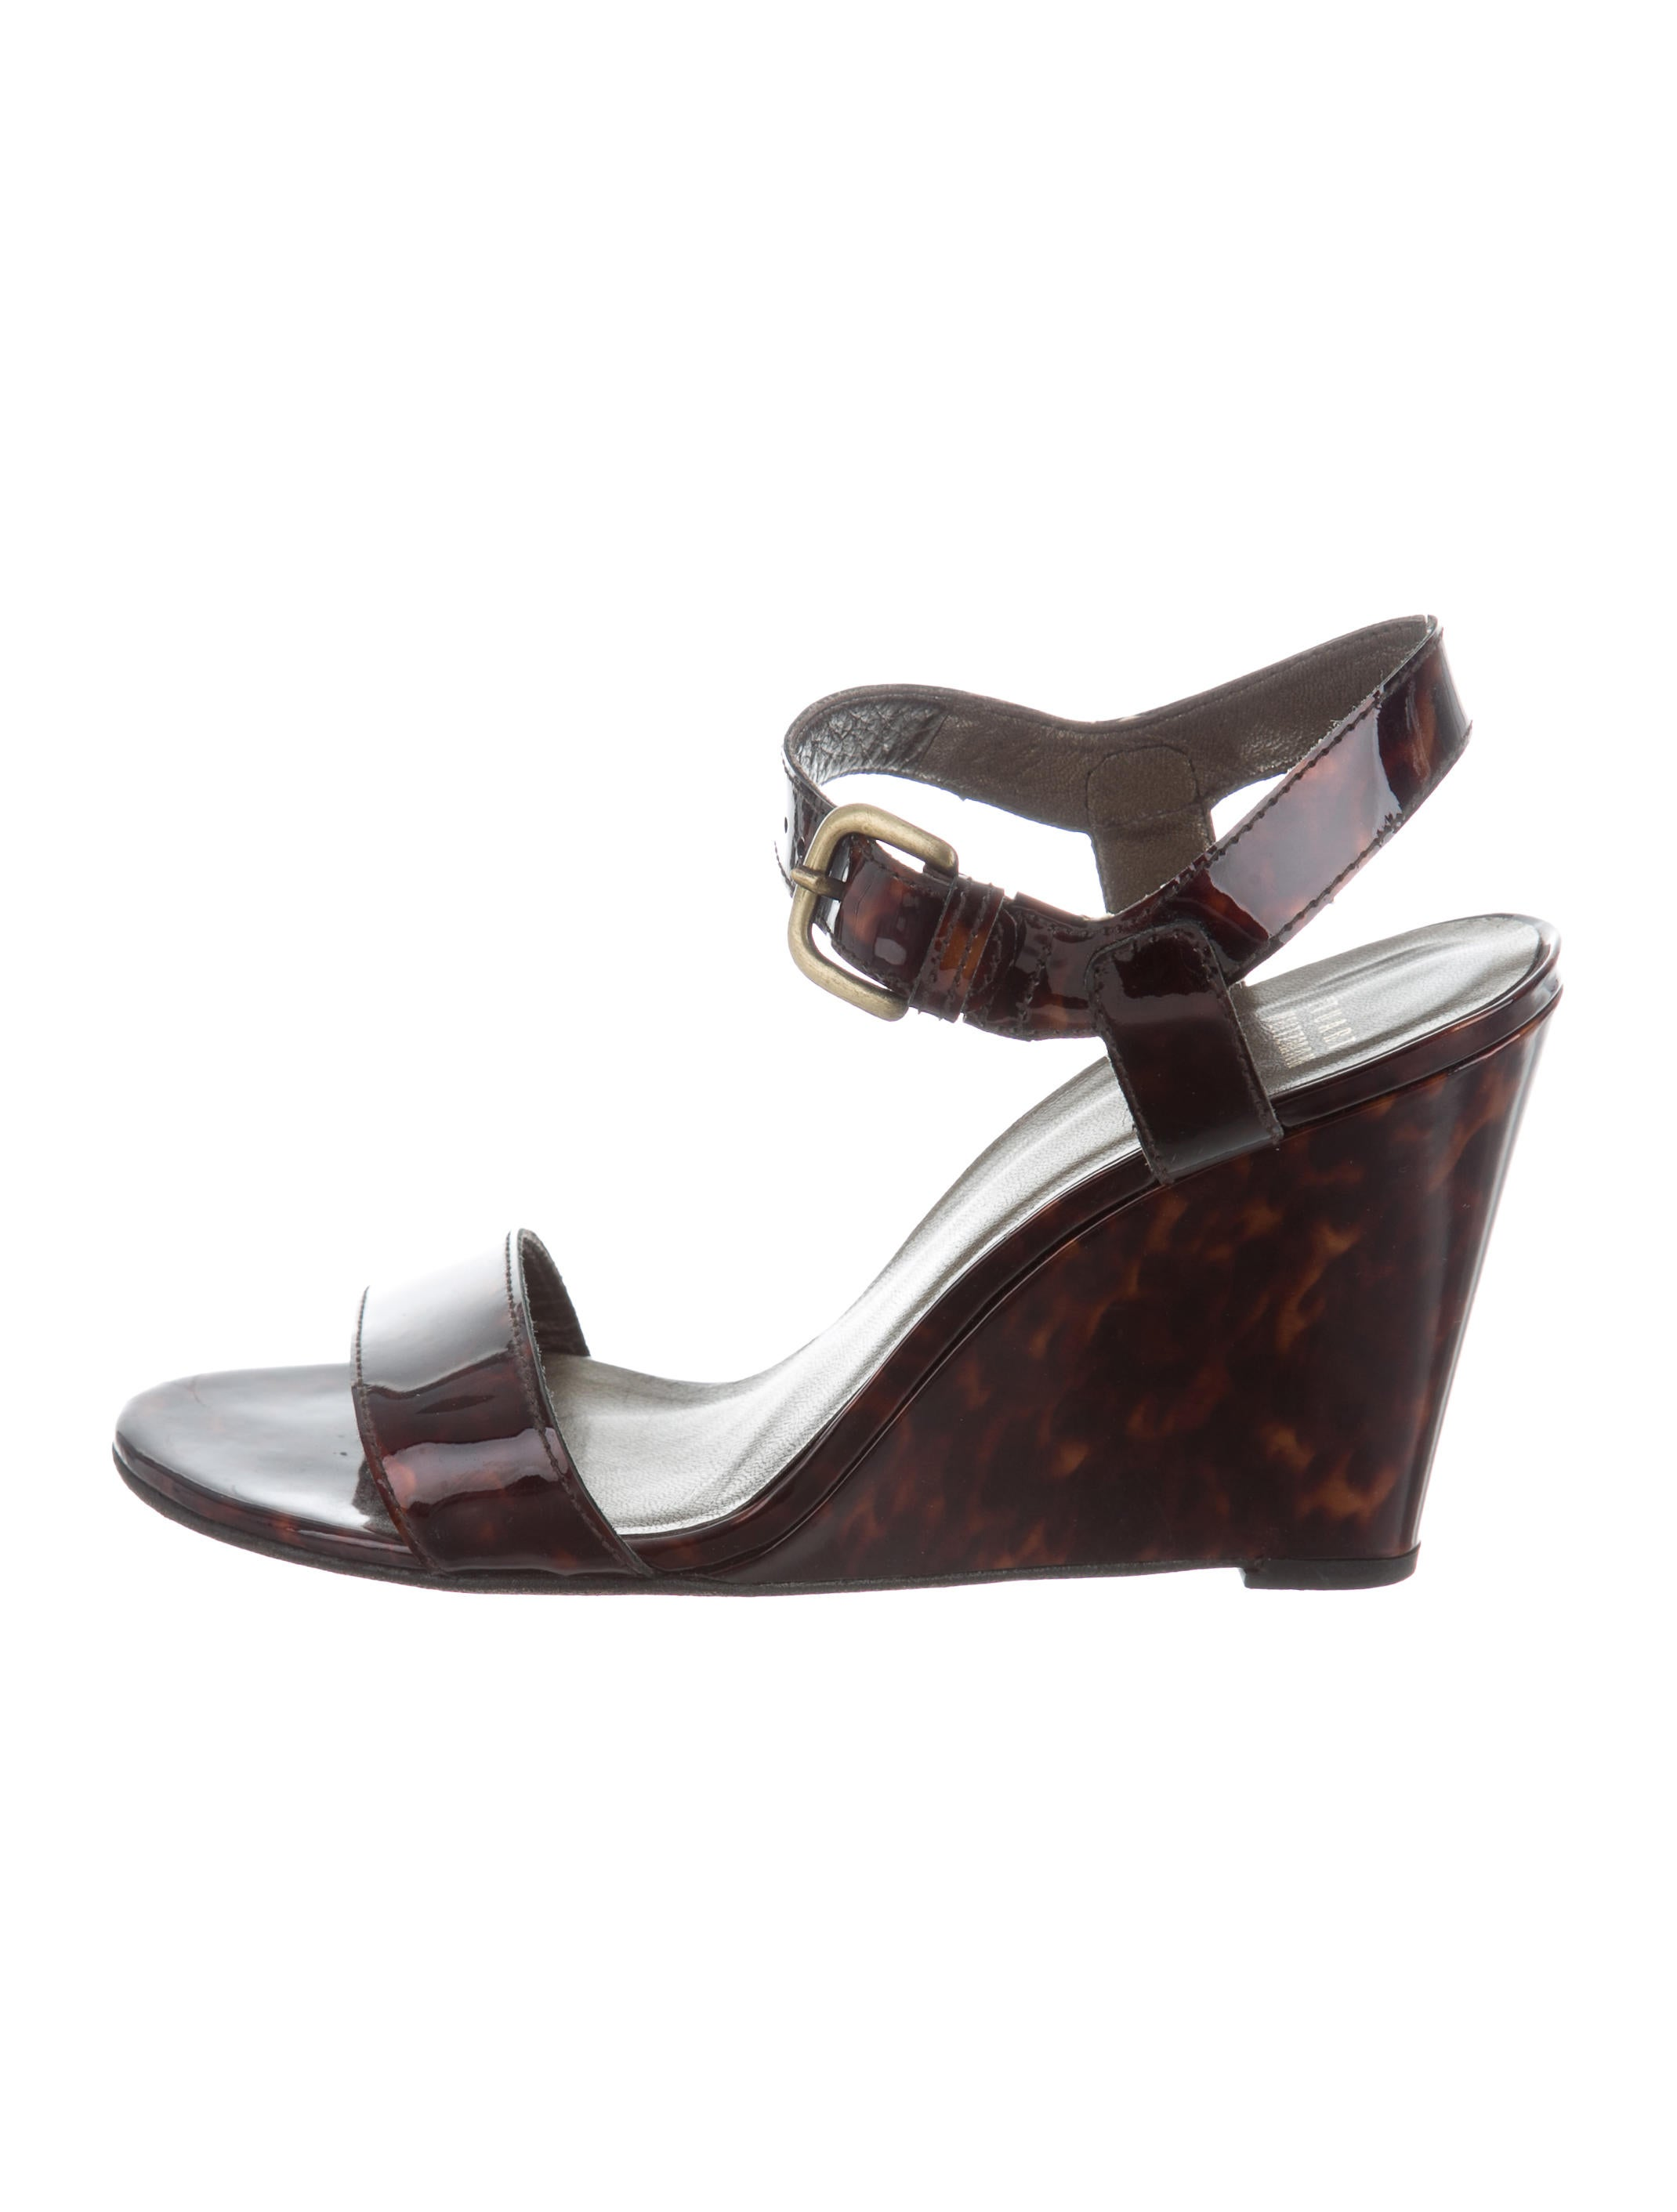 Stuart Weitzman Patent Leather Multi-Strap Wedges for cheap for sale free shipping with mastercard cheap sale new styles eOkJRResa